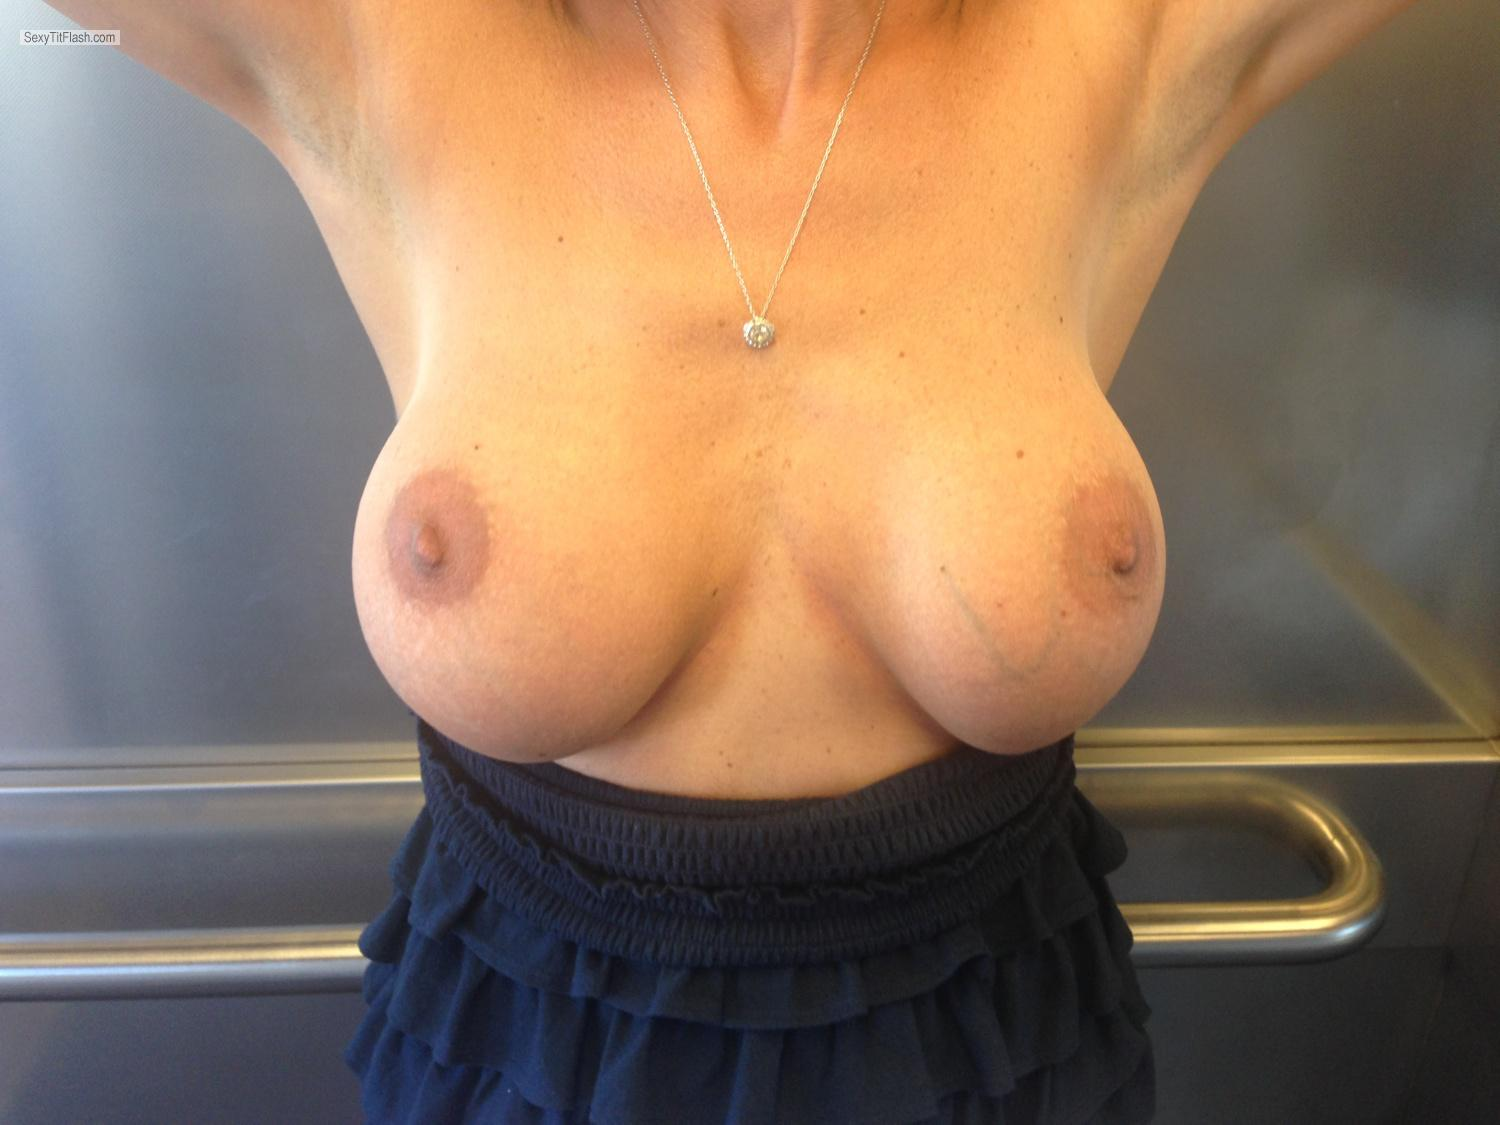 Tit Flash: Big Tits By IPhone - Loo from Spain